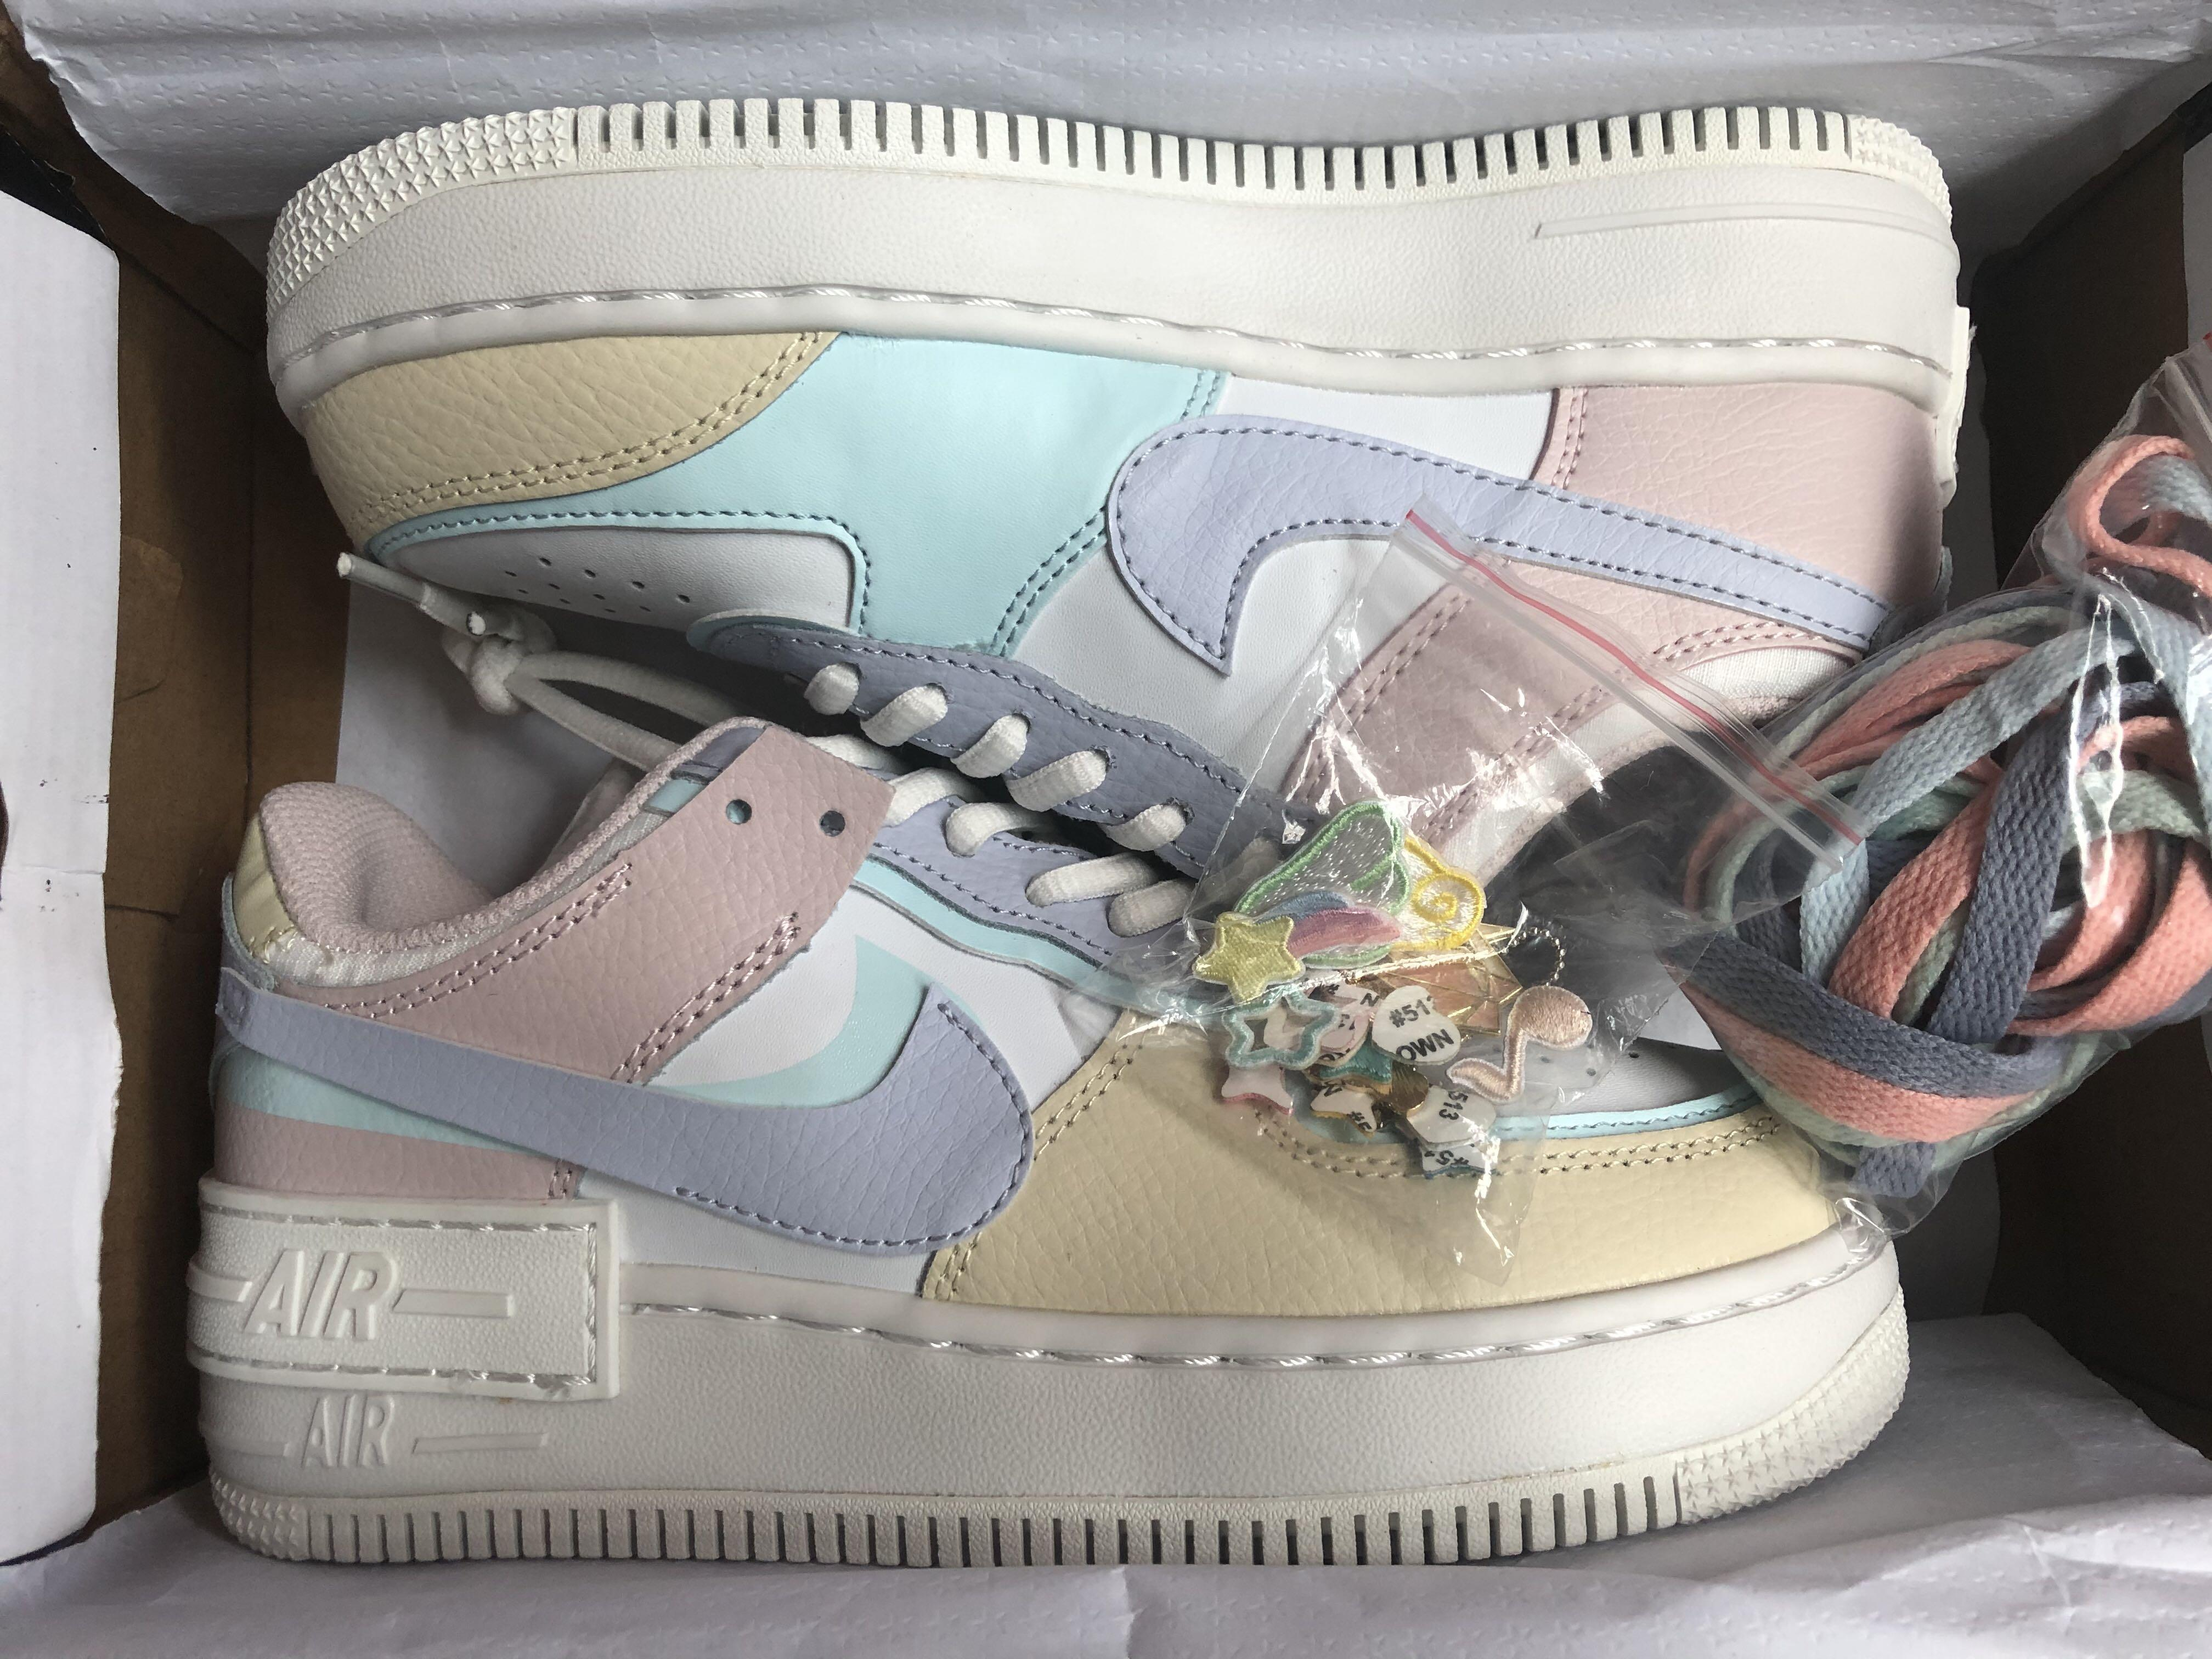 Nike Air Force 1 Shadow Pastel With Accessories Decoration Women S Casual Sneakers Shoes Women S Fashion Shoes Sneakers On Carousell Also, the counterfeit nike air force 1 pair's a i r text is placed too high on the sneakers, as it almost makes contact with the swoosh logo above, and that's something which you will never meet on an authentic nike af1 pair. sgd